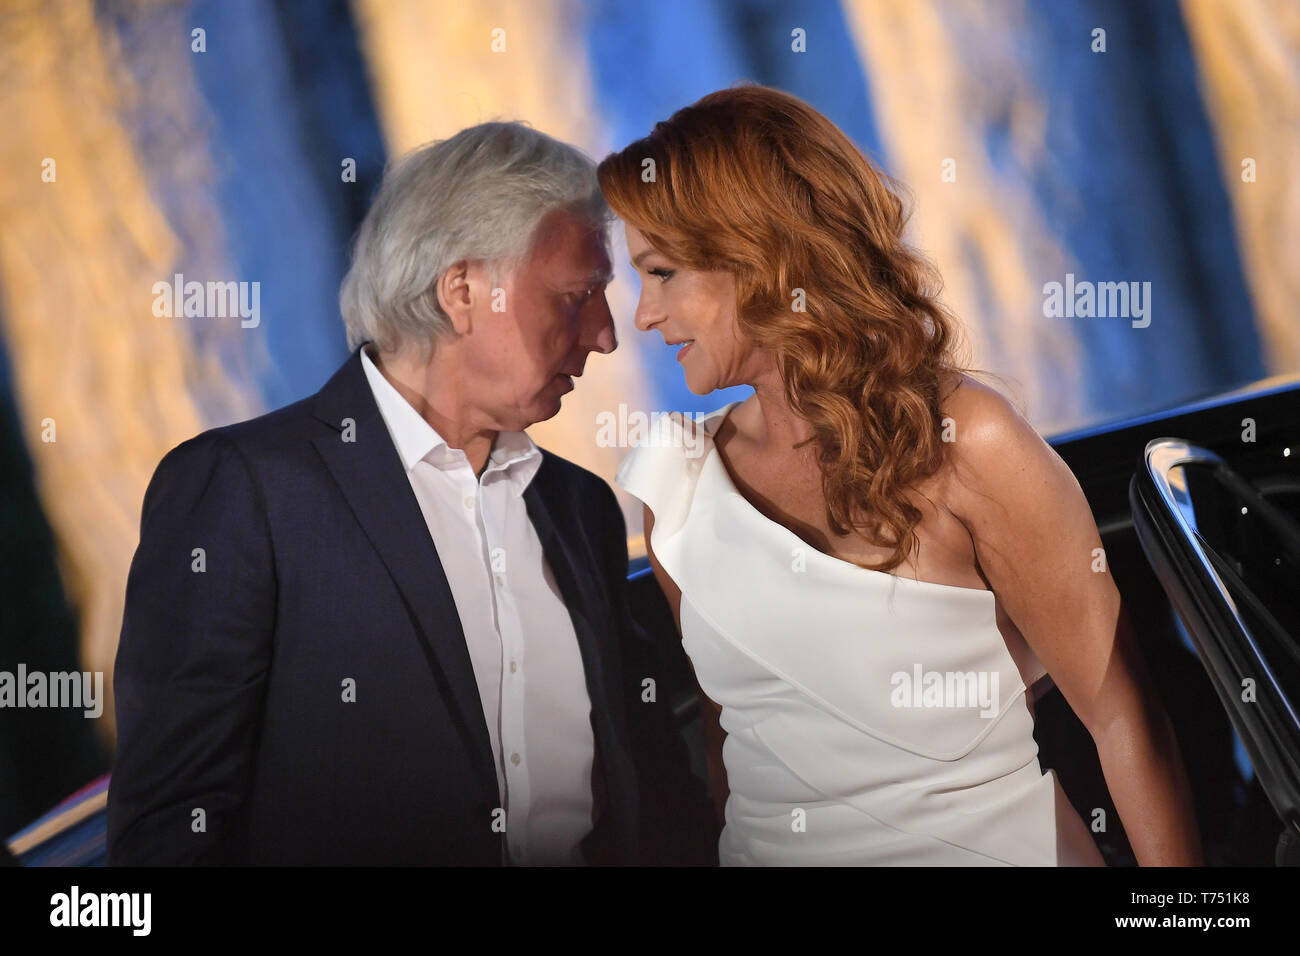 Andrea Ferber High Resolution Stock Photography And Images Alamy